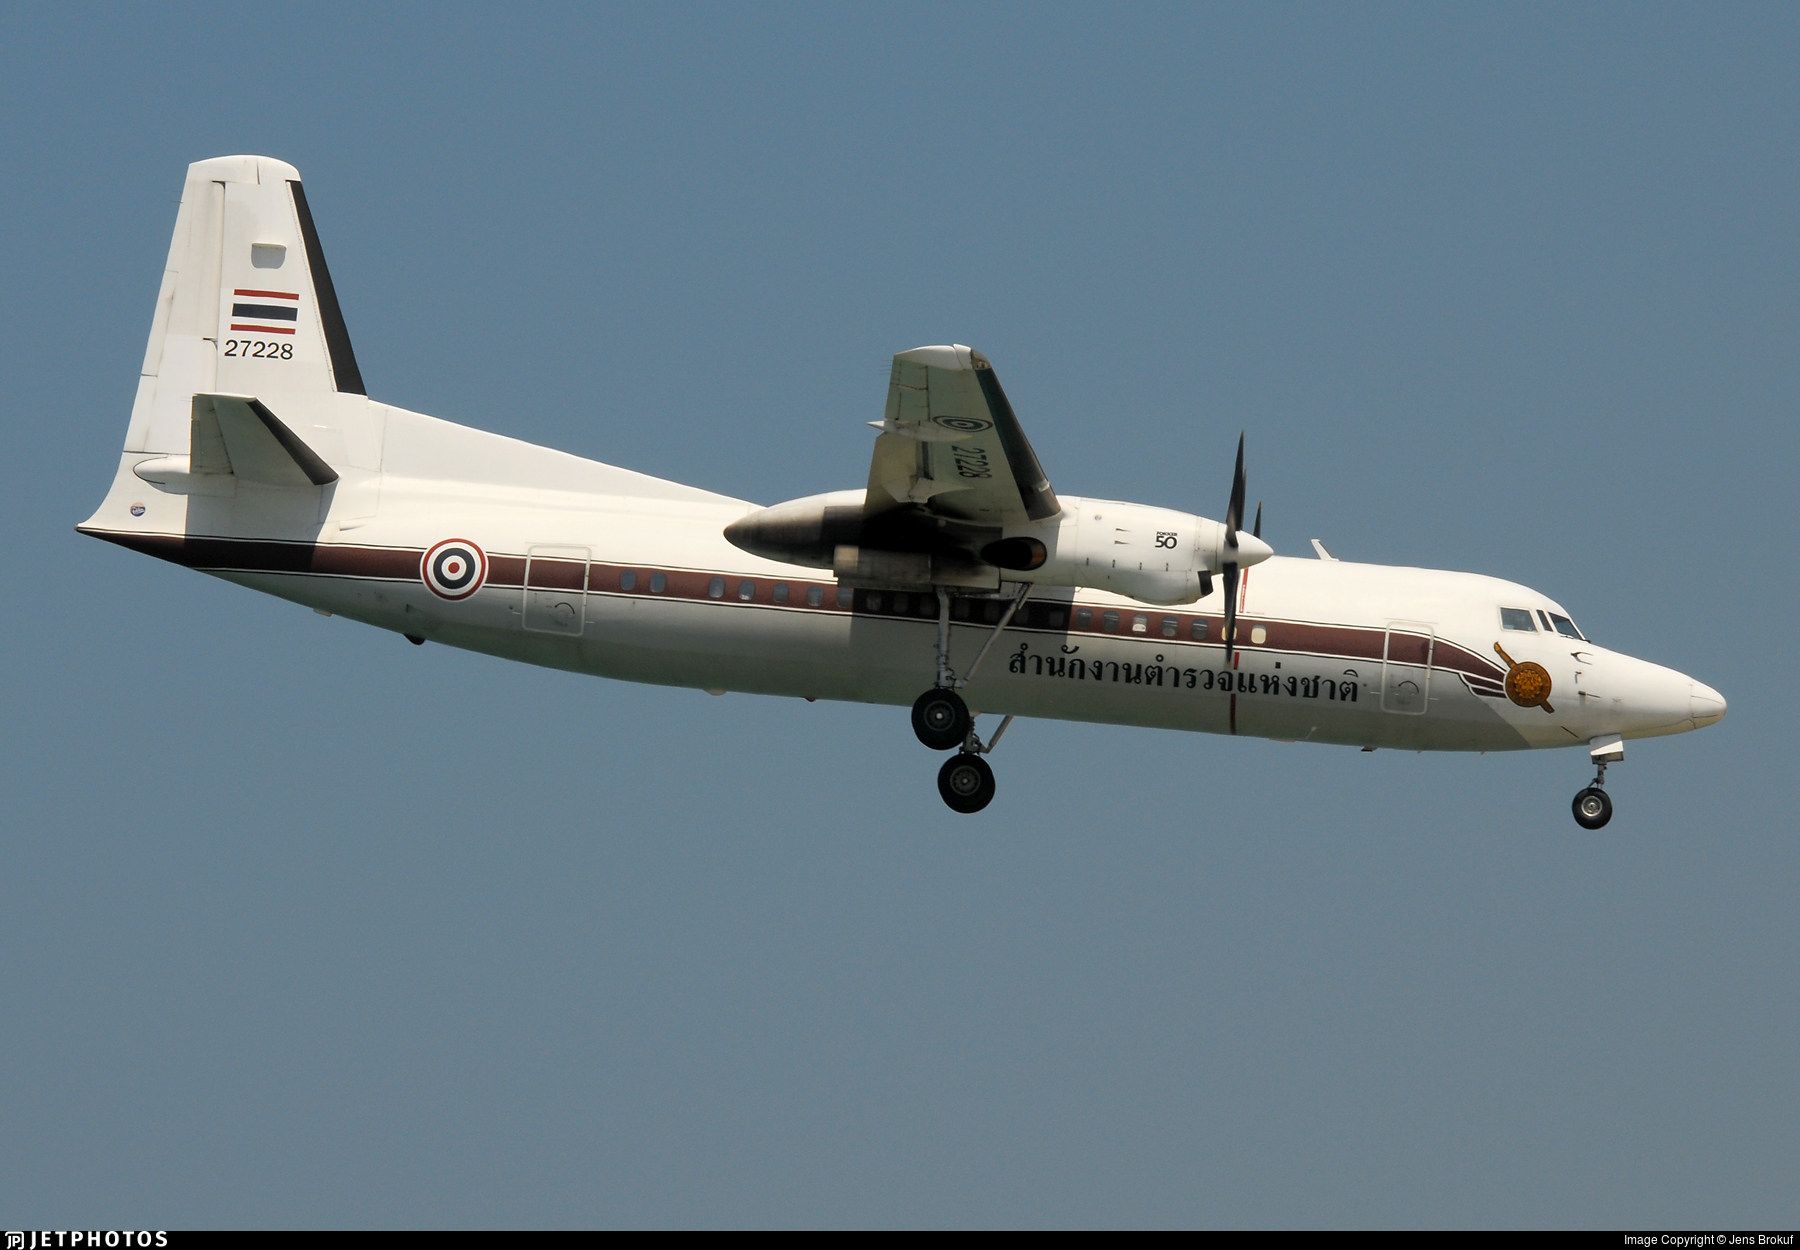 27228 - Fokker 50 - Thailand - Royal Thai Police Wing